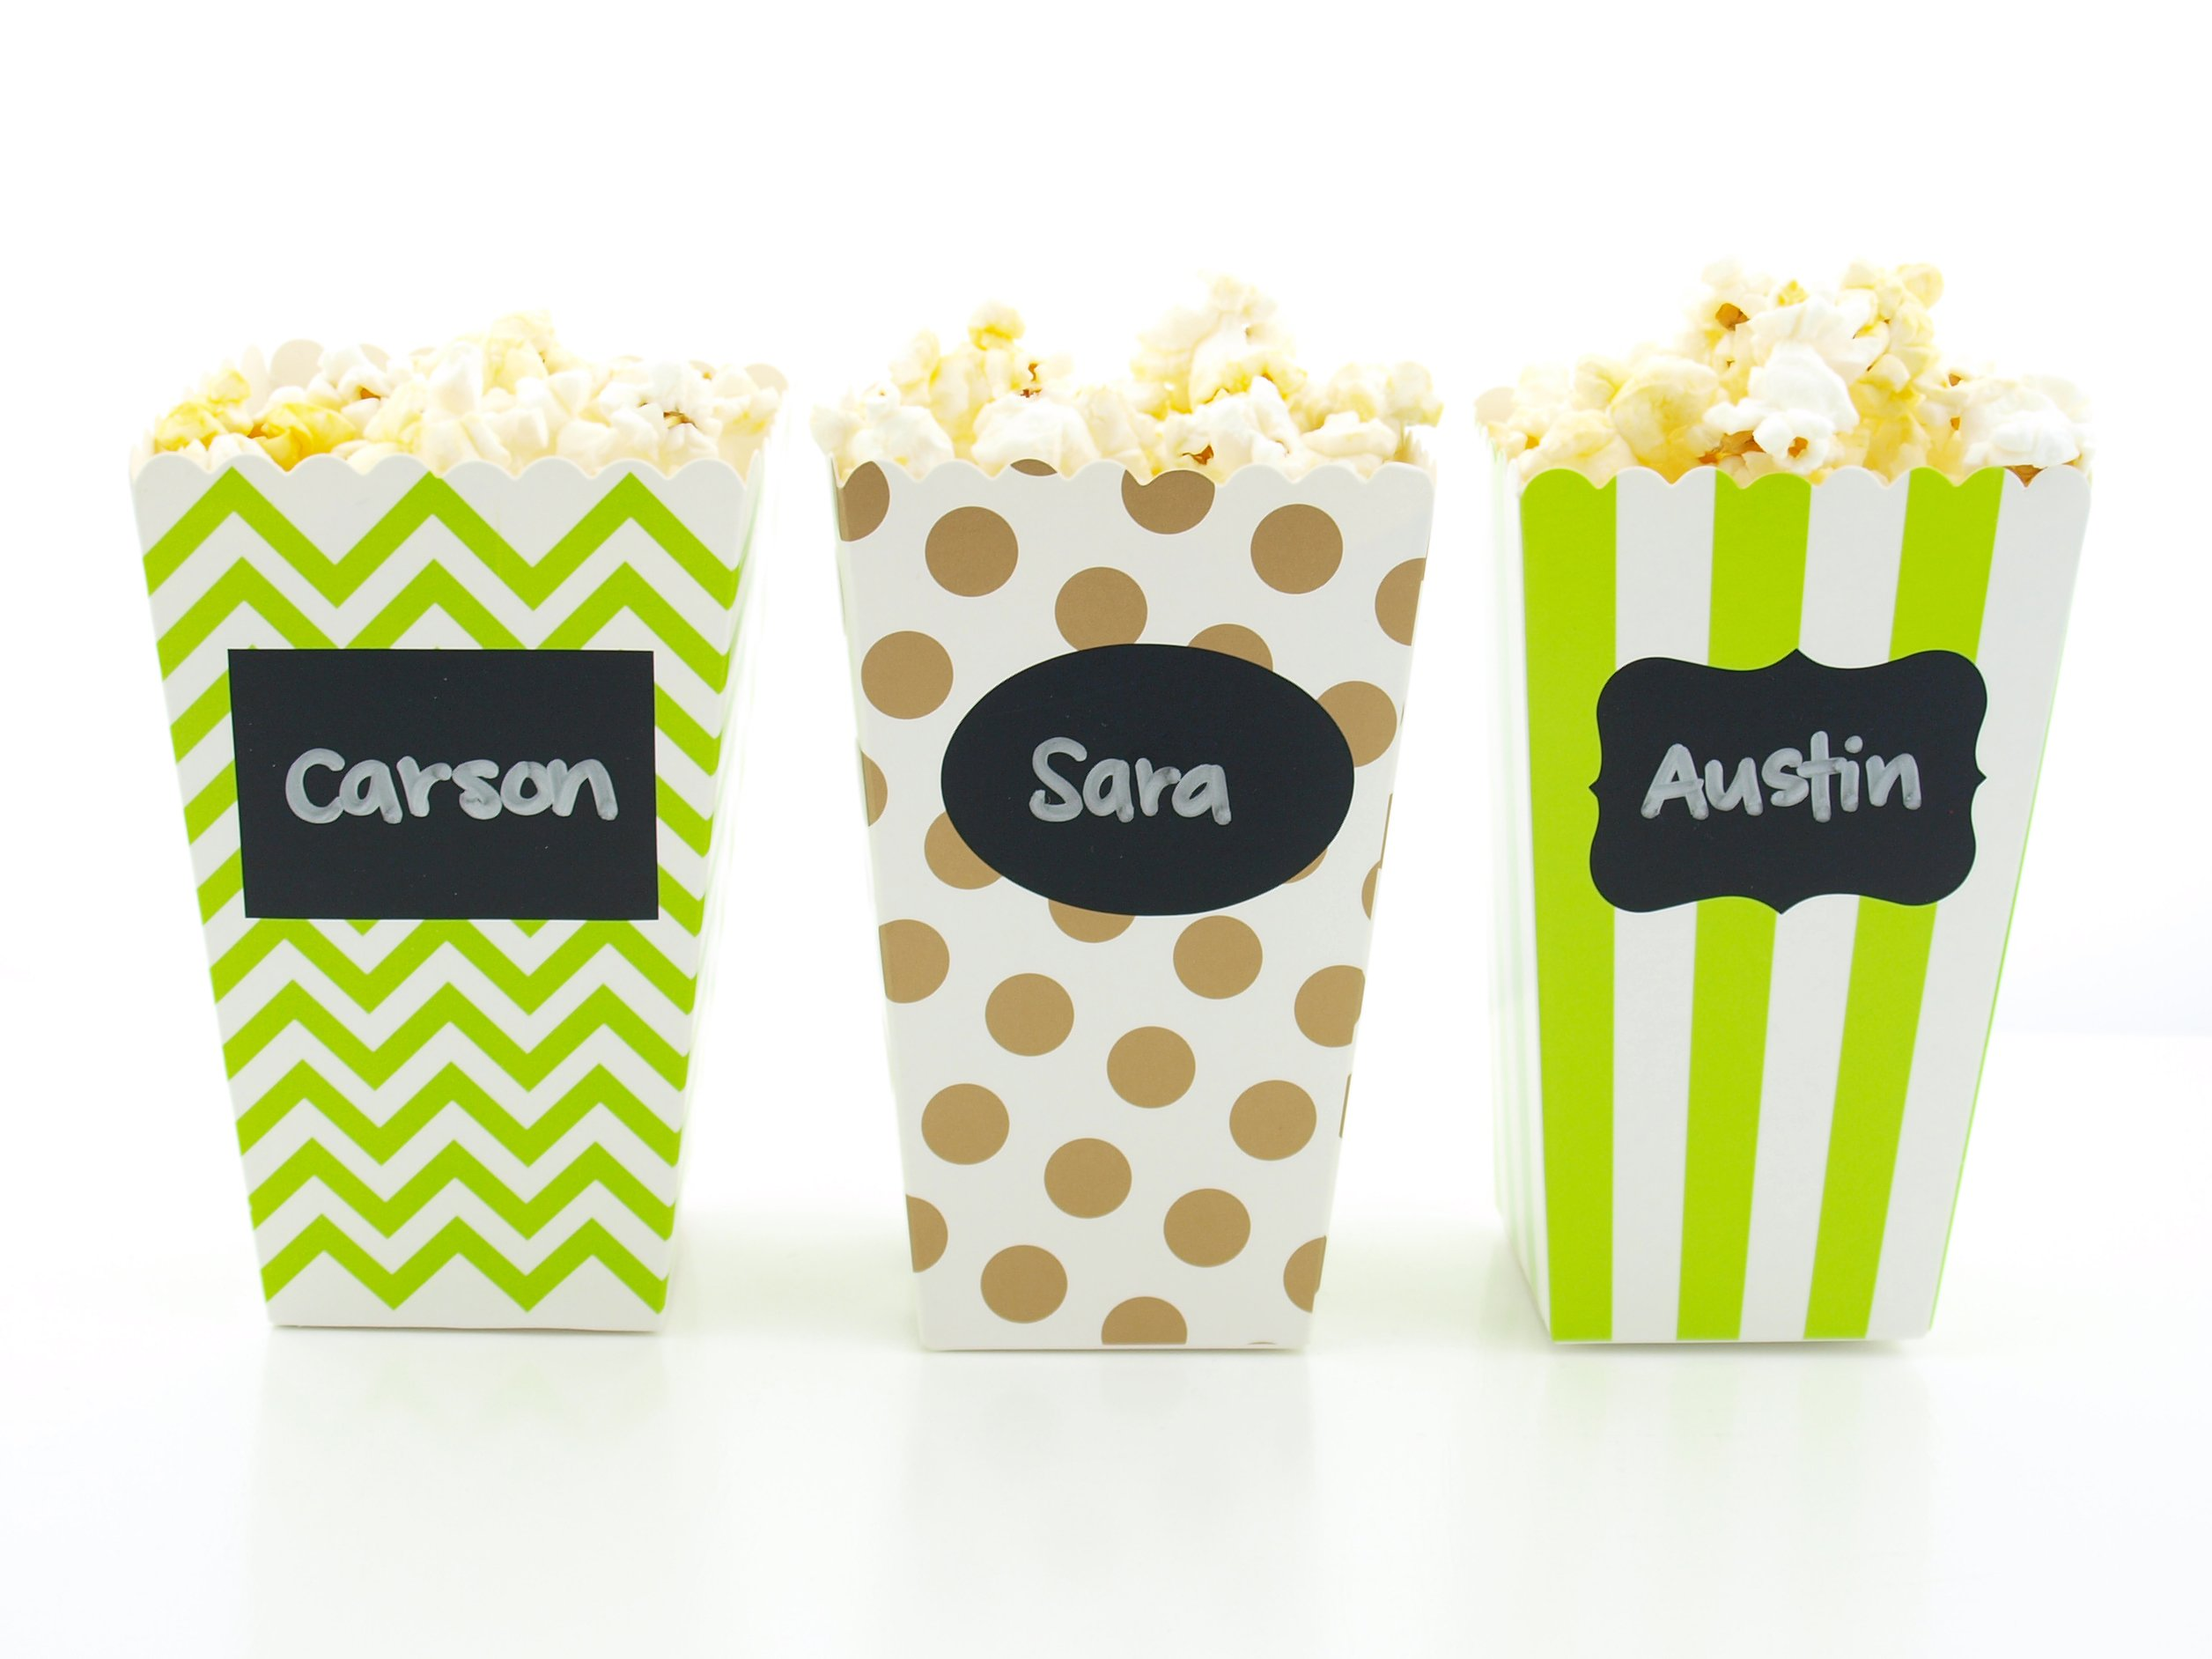 Dinosaur Party Popcorn Boxes & Black Label Chalkboard Vinyl Stickers (36 Pack) - Green & Brown Jurassic Dinosaur Party Favors, Mini Dino Movie Theater Popcorn Tubs for Dinosaurs Party Supplies